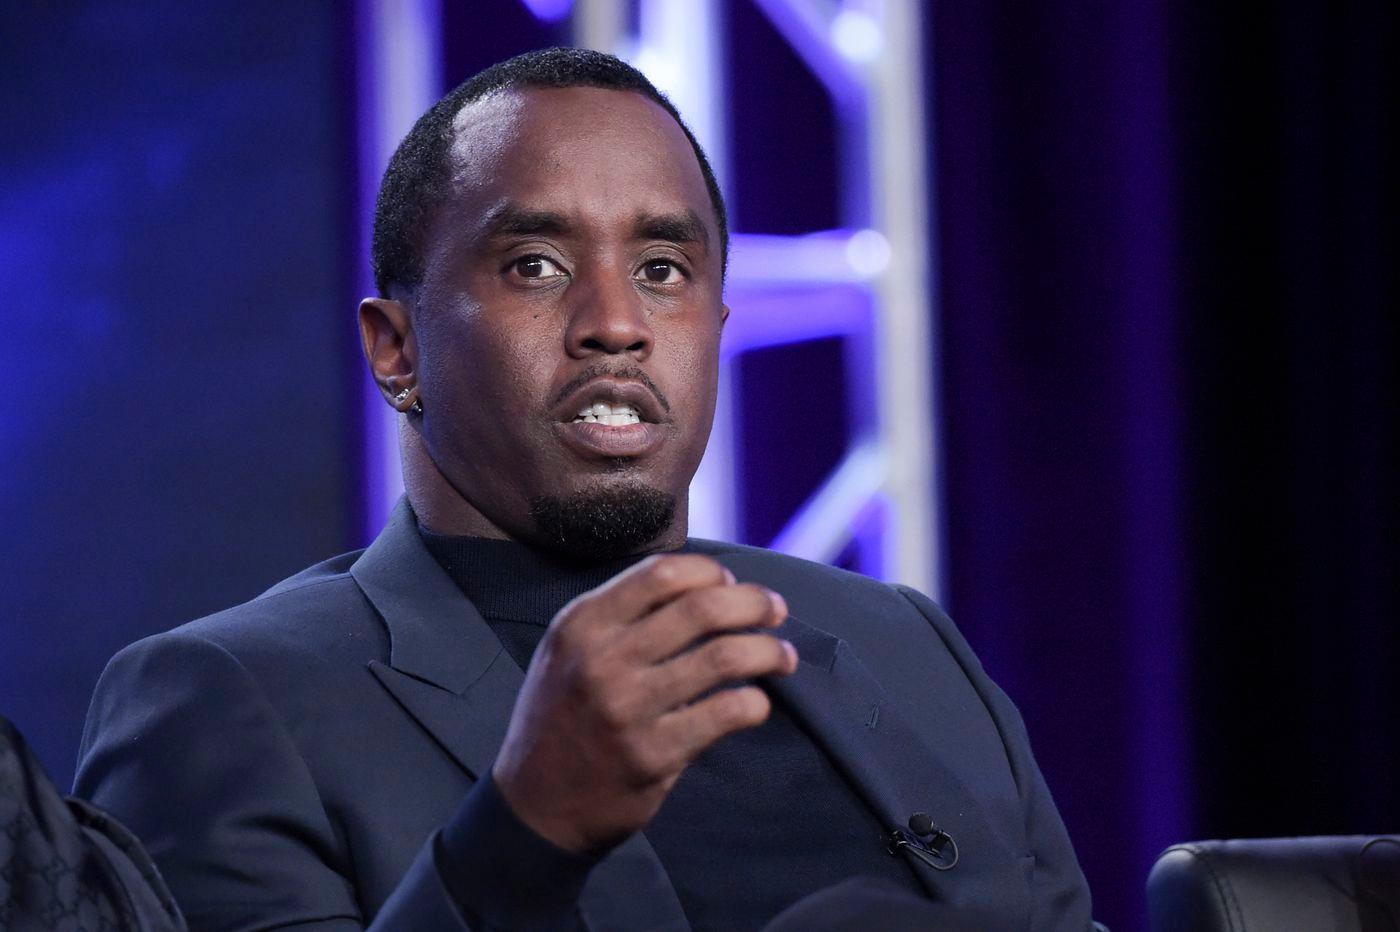 Diddy Shows Support For This Woman, Praising Her, And Fans Are Completely Here For It - See Where Diddy's Thoughts Are Heading At!